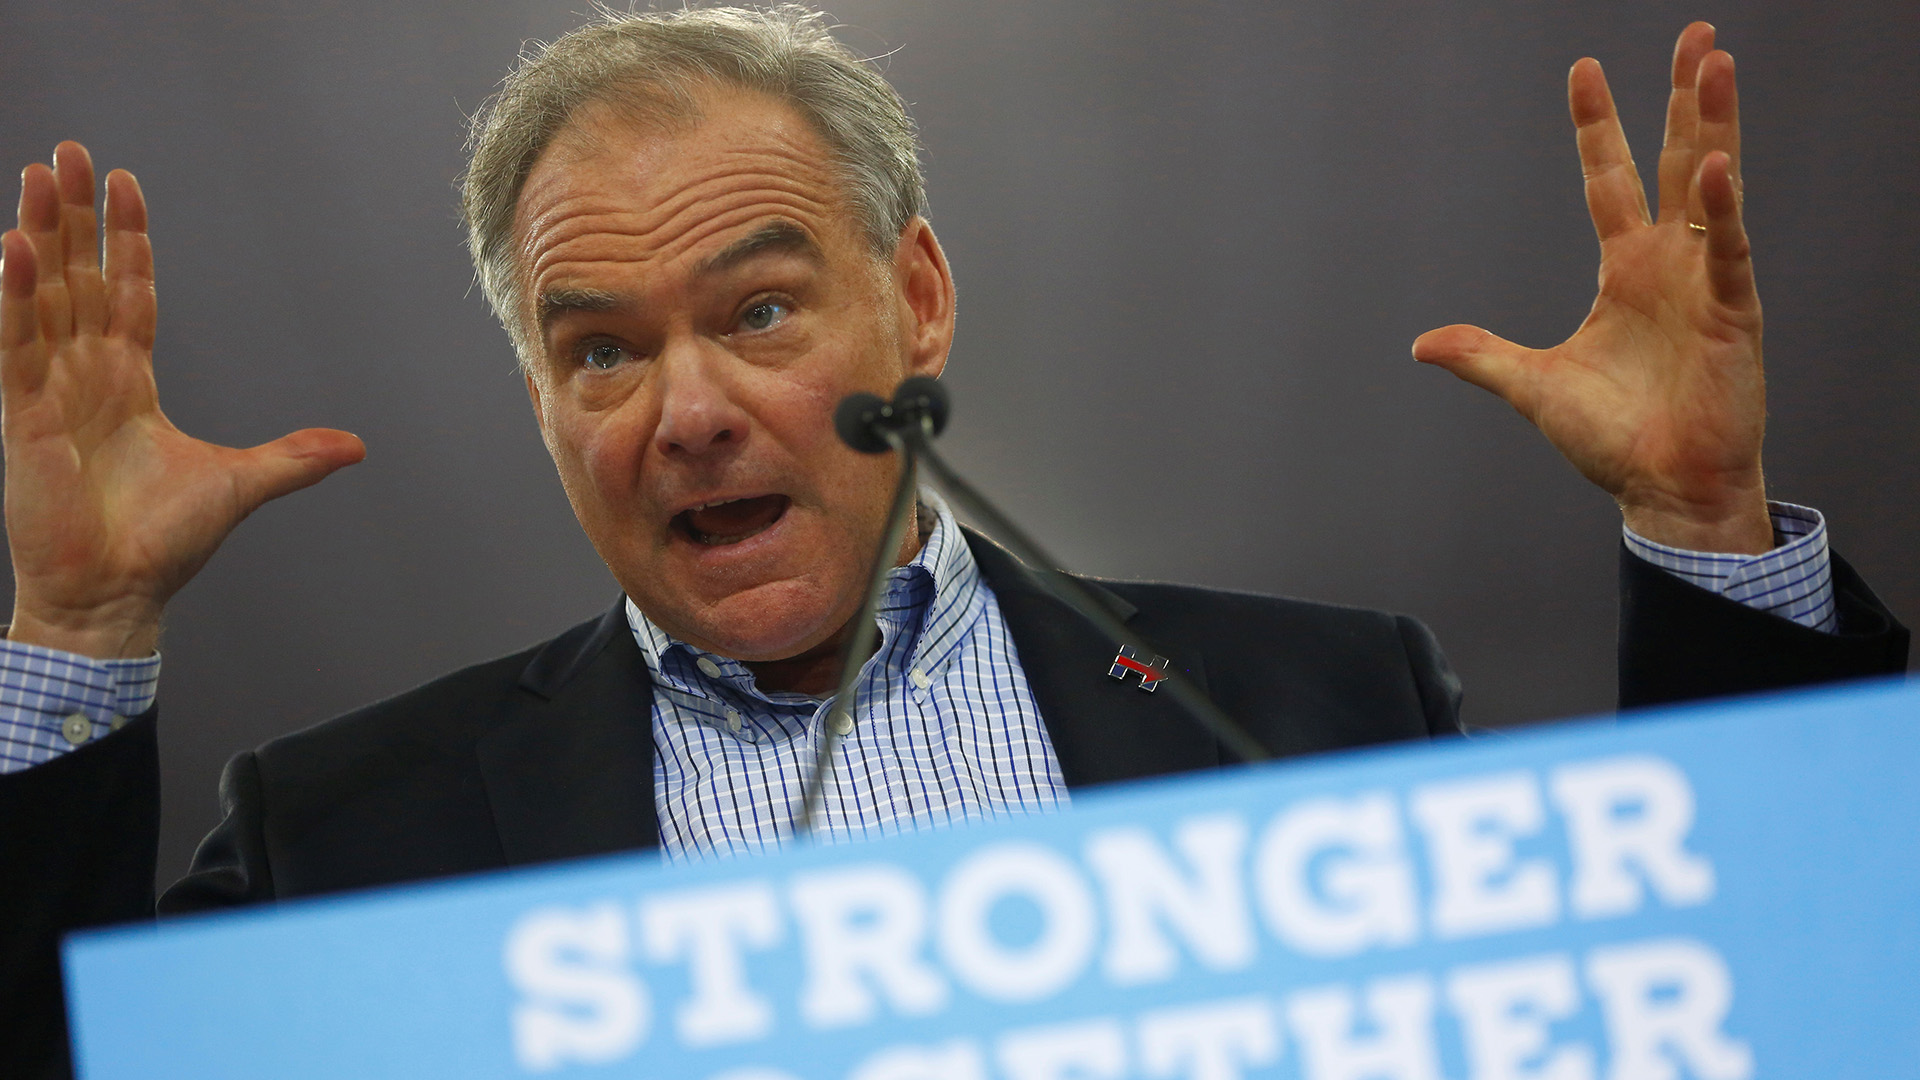 Kaine says Catholic Church might change on gay marriage